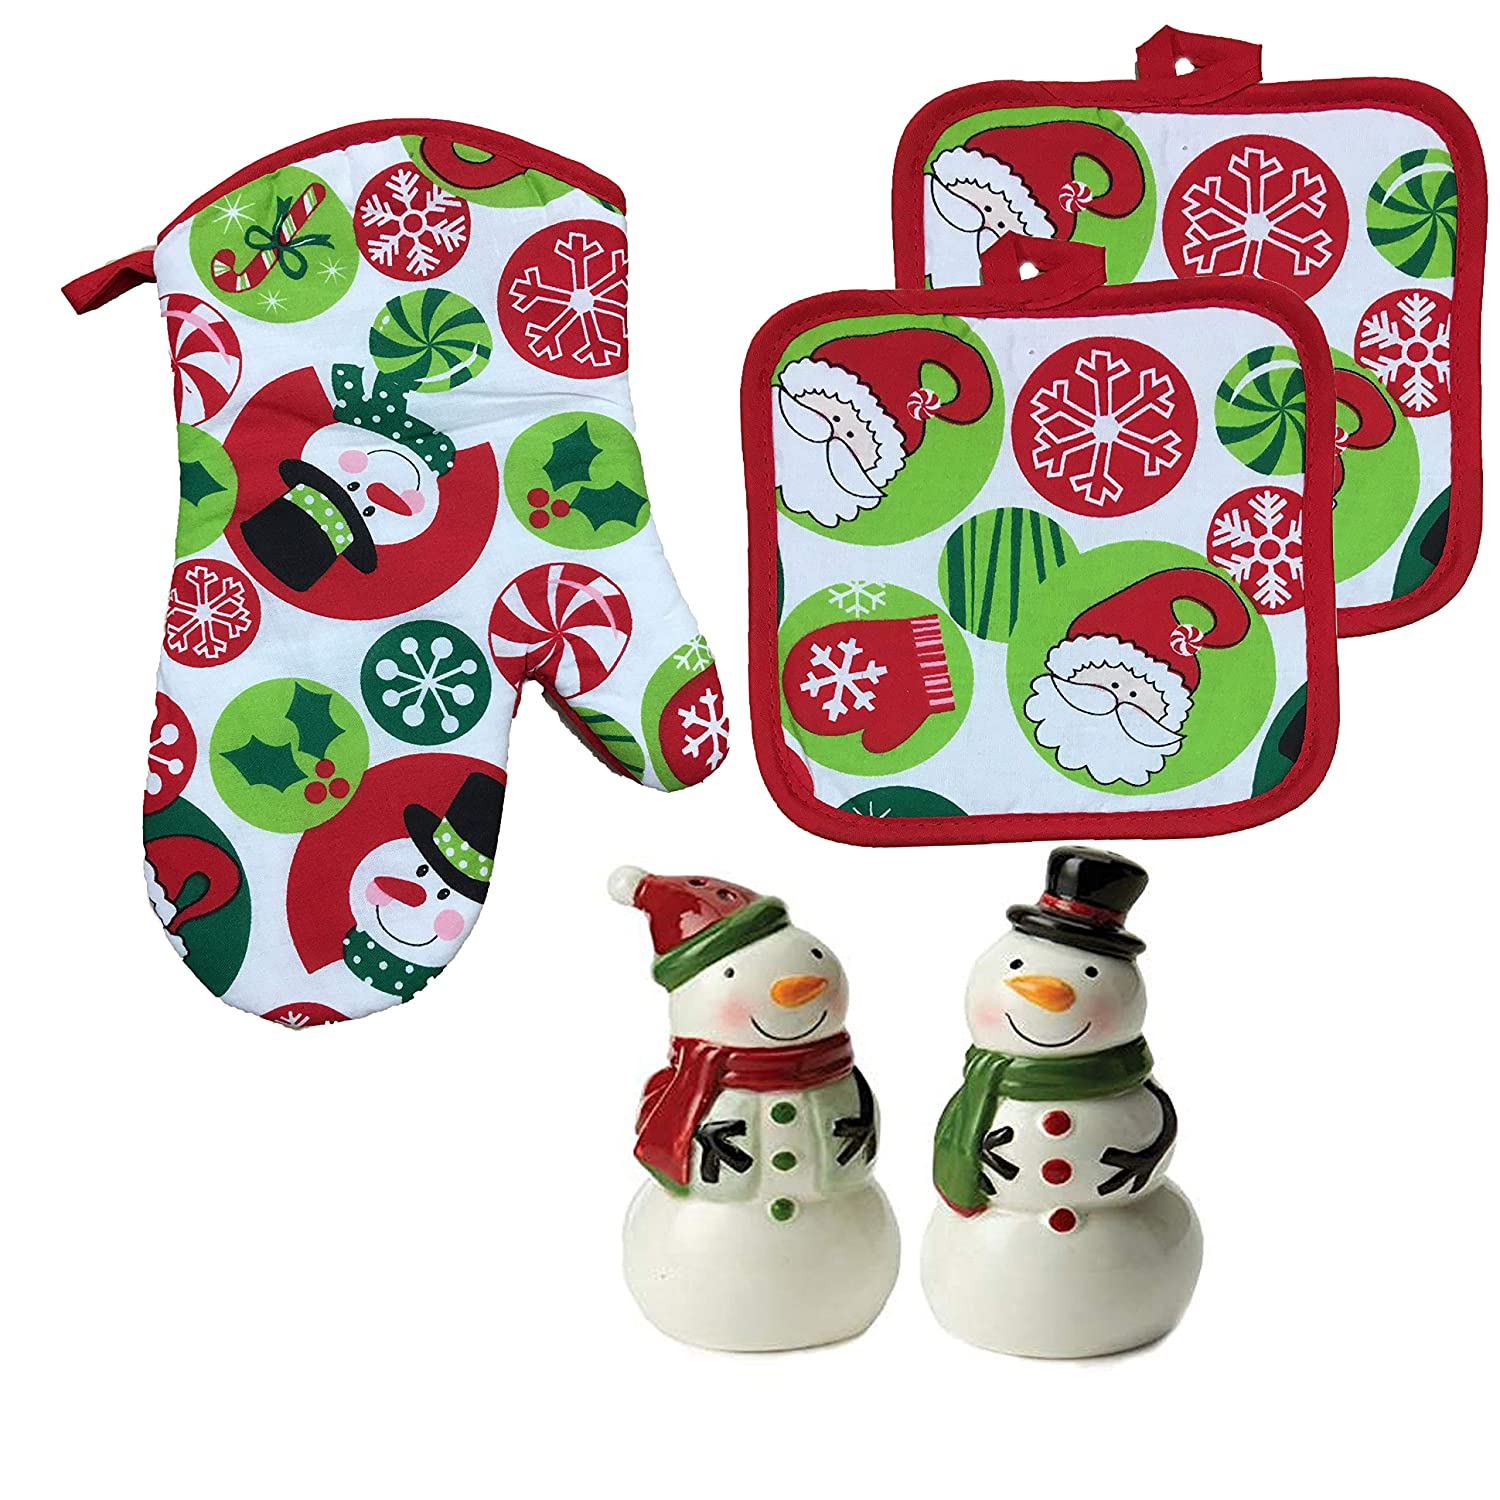 Christmas Holiday Ornaments Printed Oven Mitt, Pot Holders and Salt and Pepper Shakers 5-Piece Gift Set (Ornaments Print)